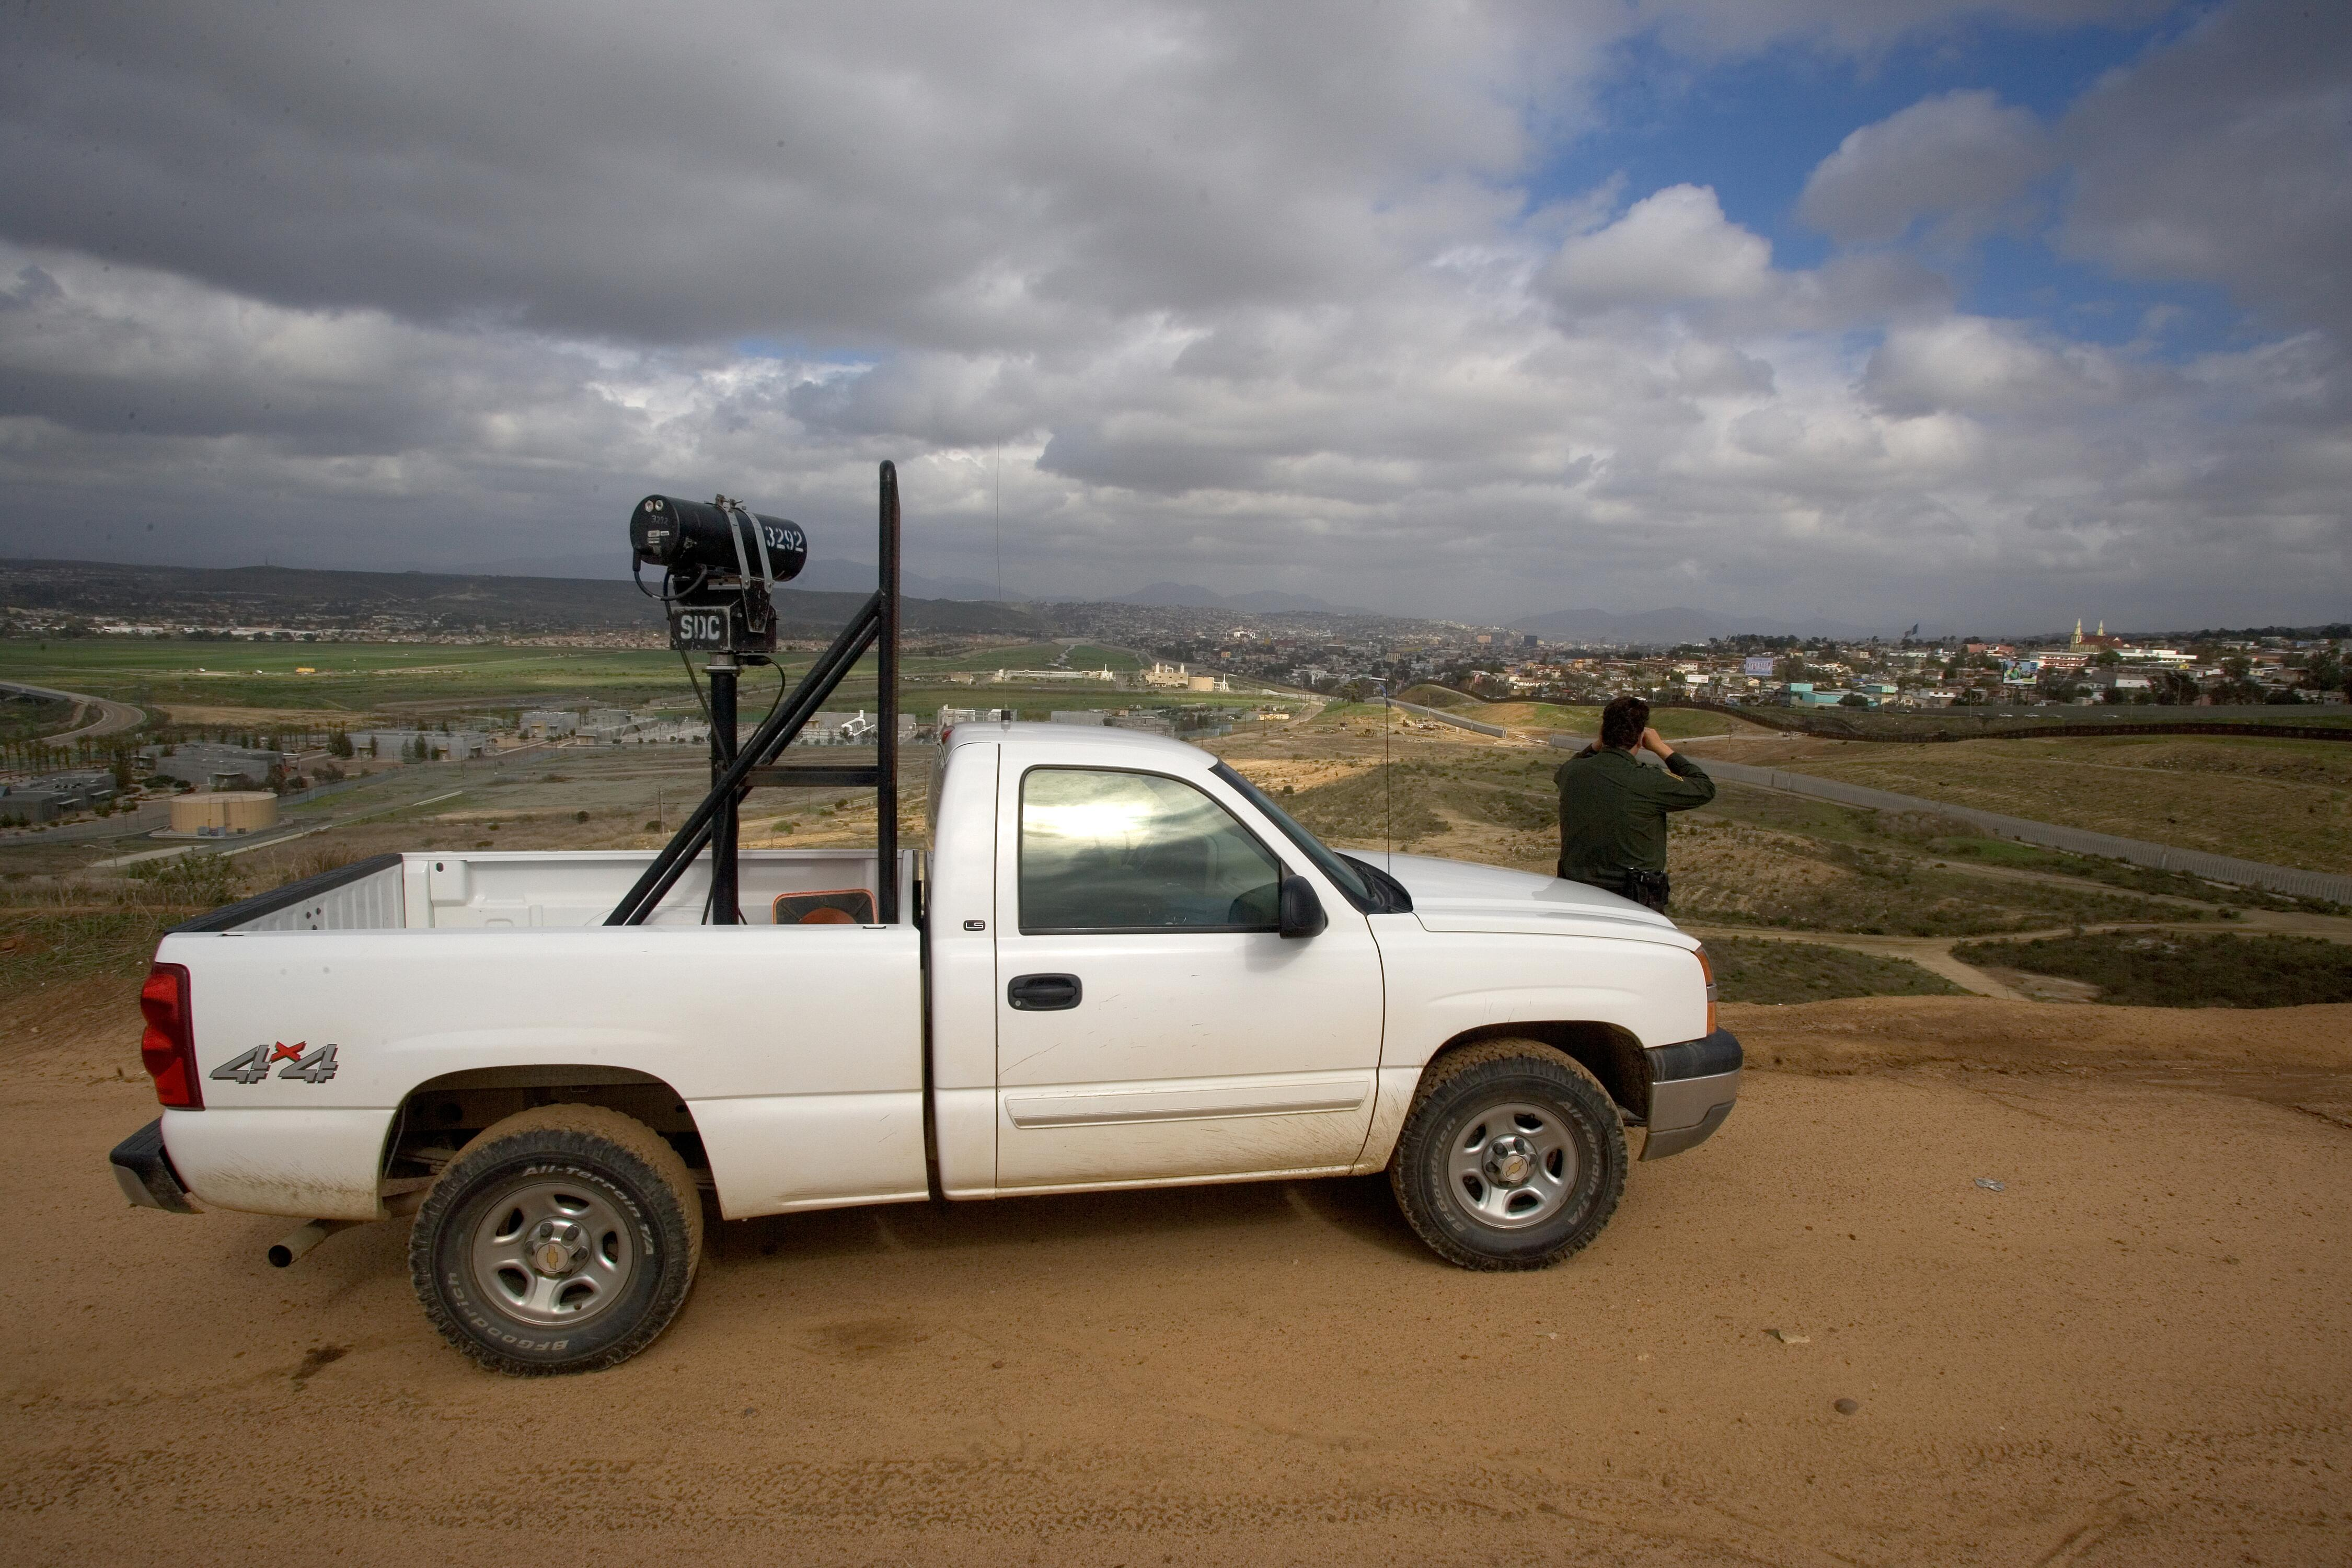 U.S. Border Patrol agent scans Imperial Valley area for signs of illegal crossings.